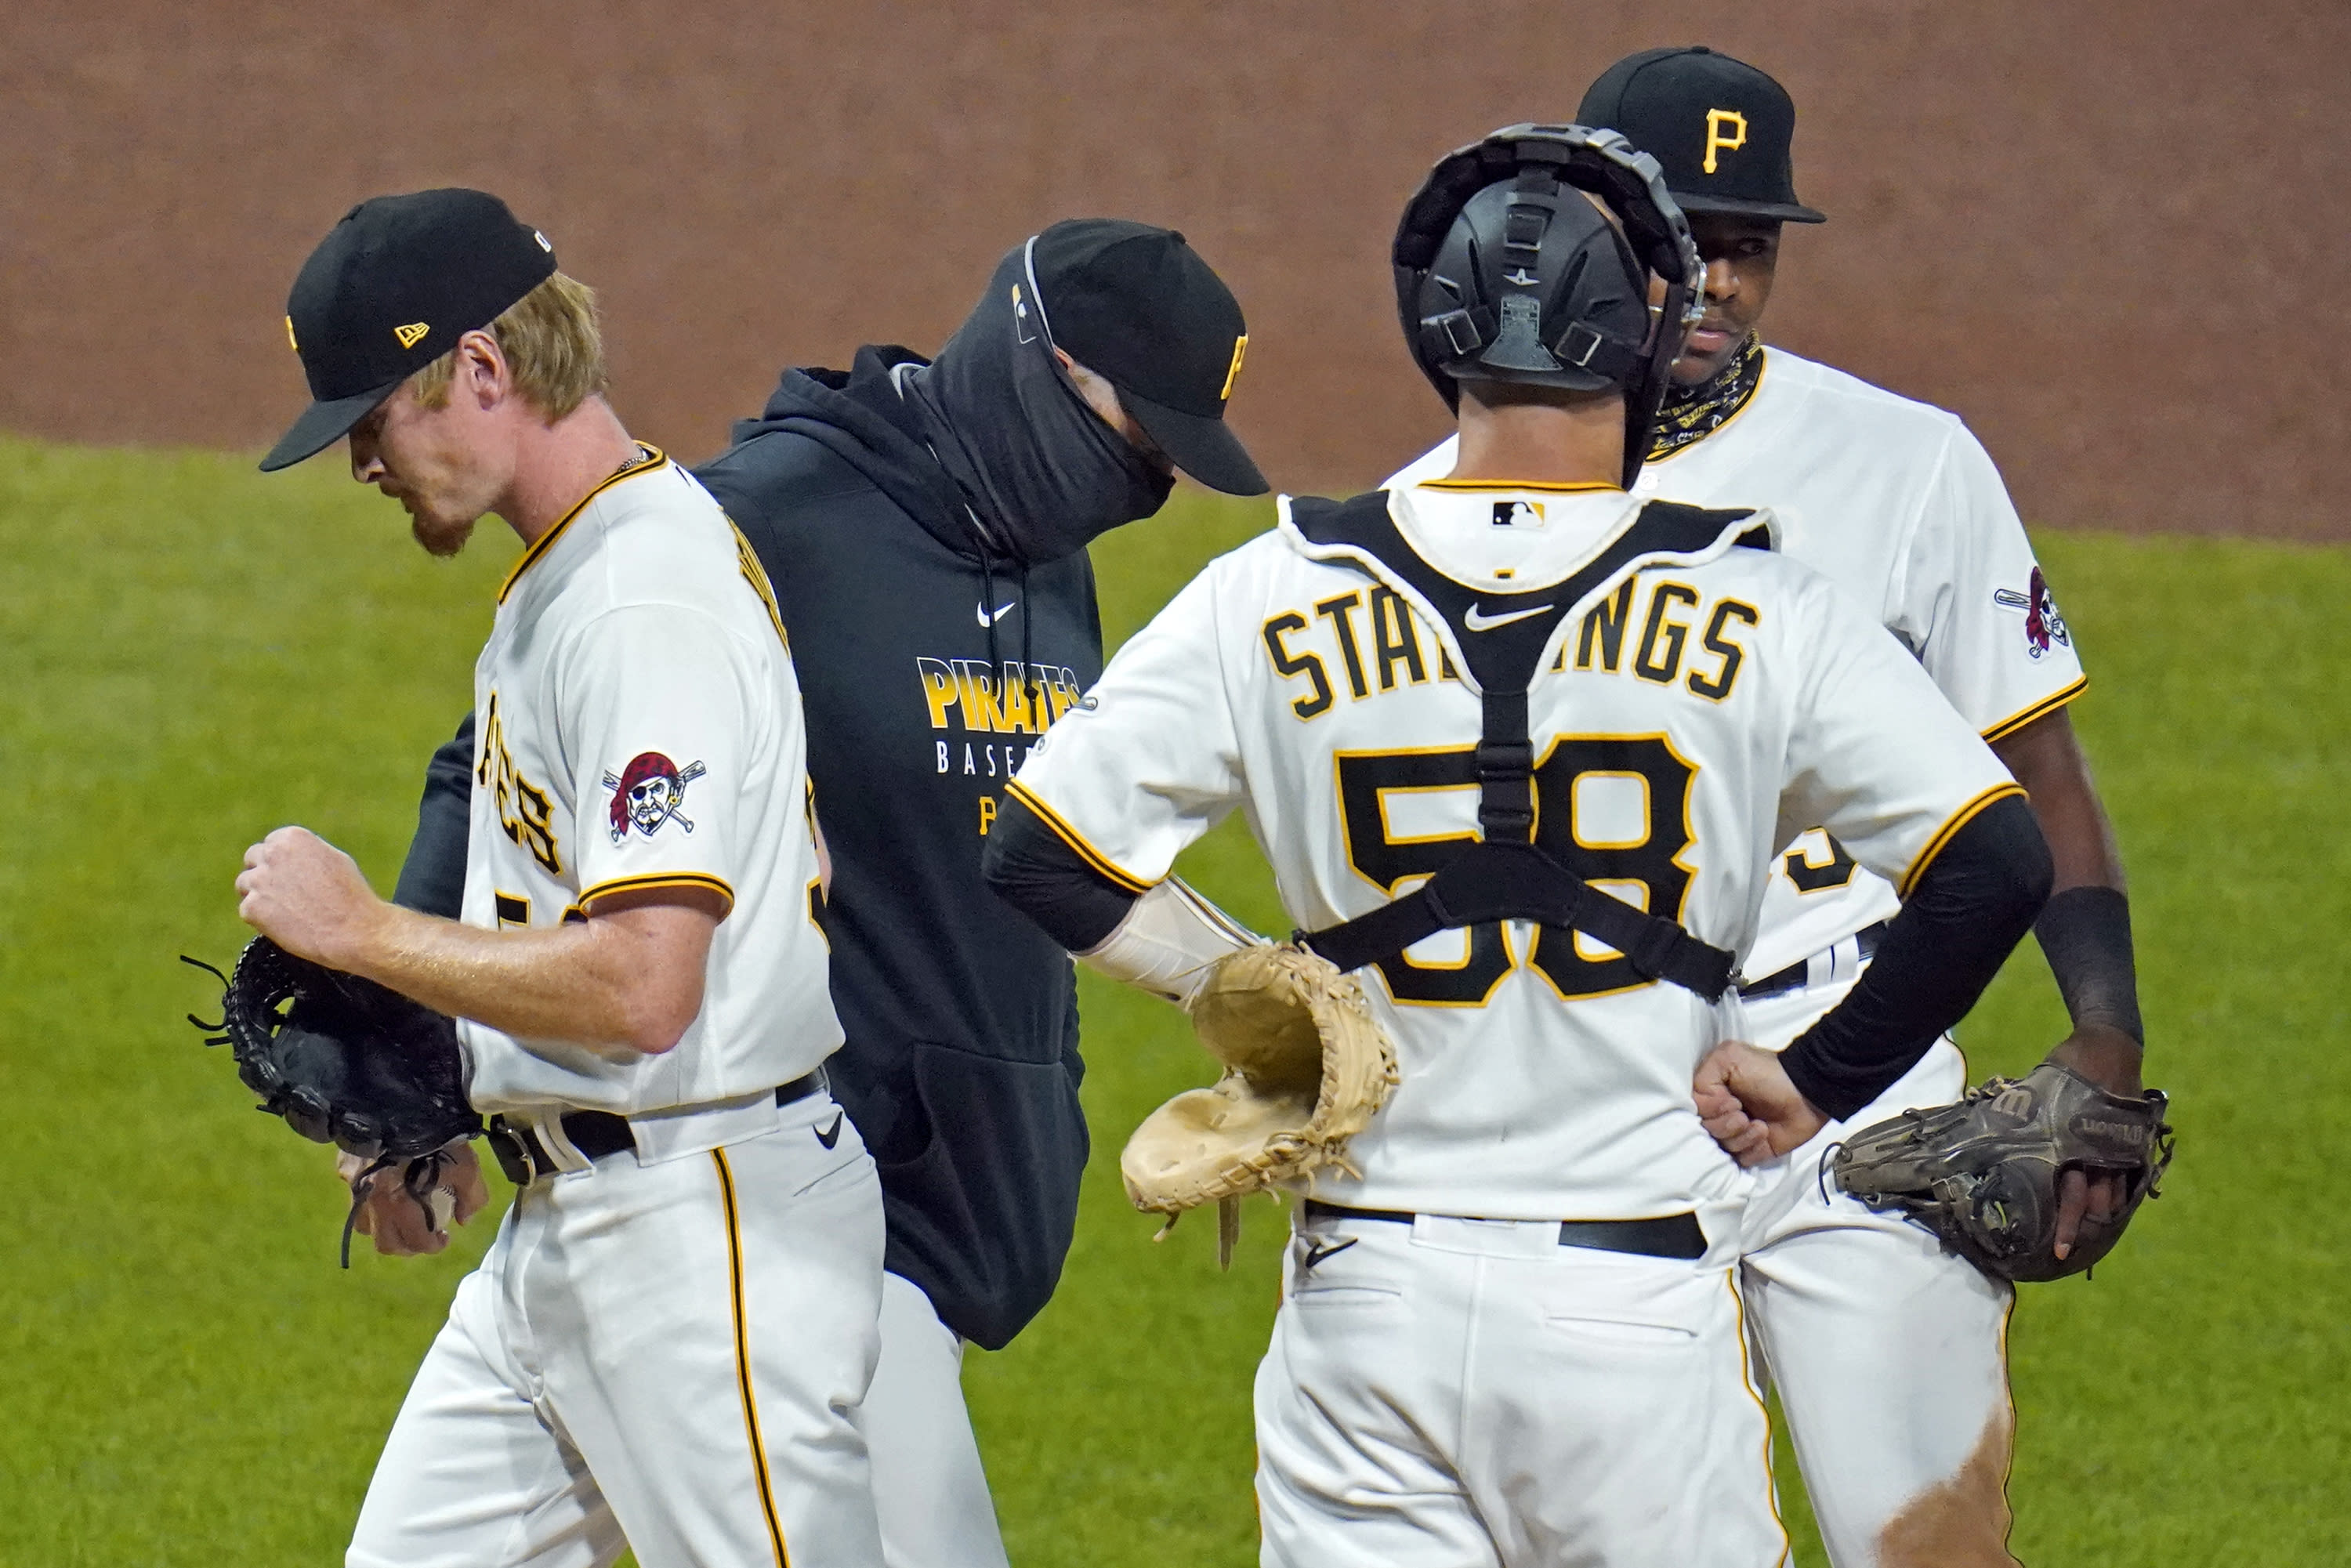 Pittsburgh Pirates relief pitcher Sam Howard, left, walks off the mound after handing the ball to manager Derek Shelton, second from left, during the seventh inning of the team's baseball game against the St. Louis Cardinals in Pittsburgh, Saturday, Sept. 19, 2020. (AP Photo/Gene J. Puskar)